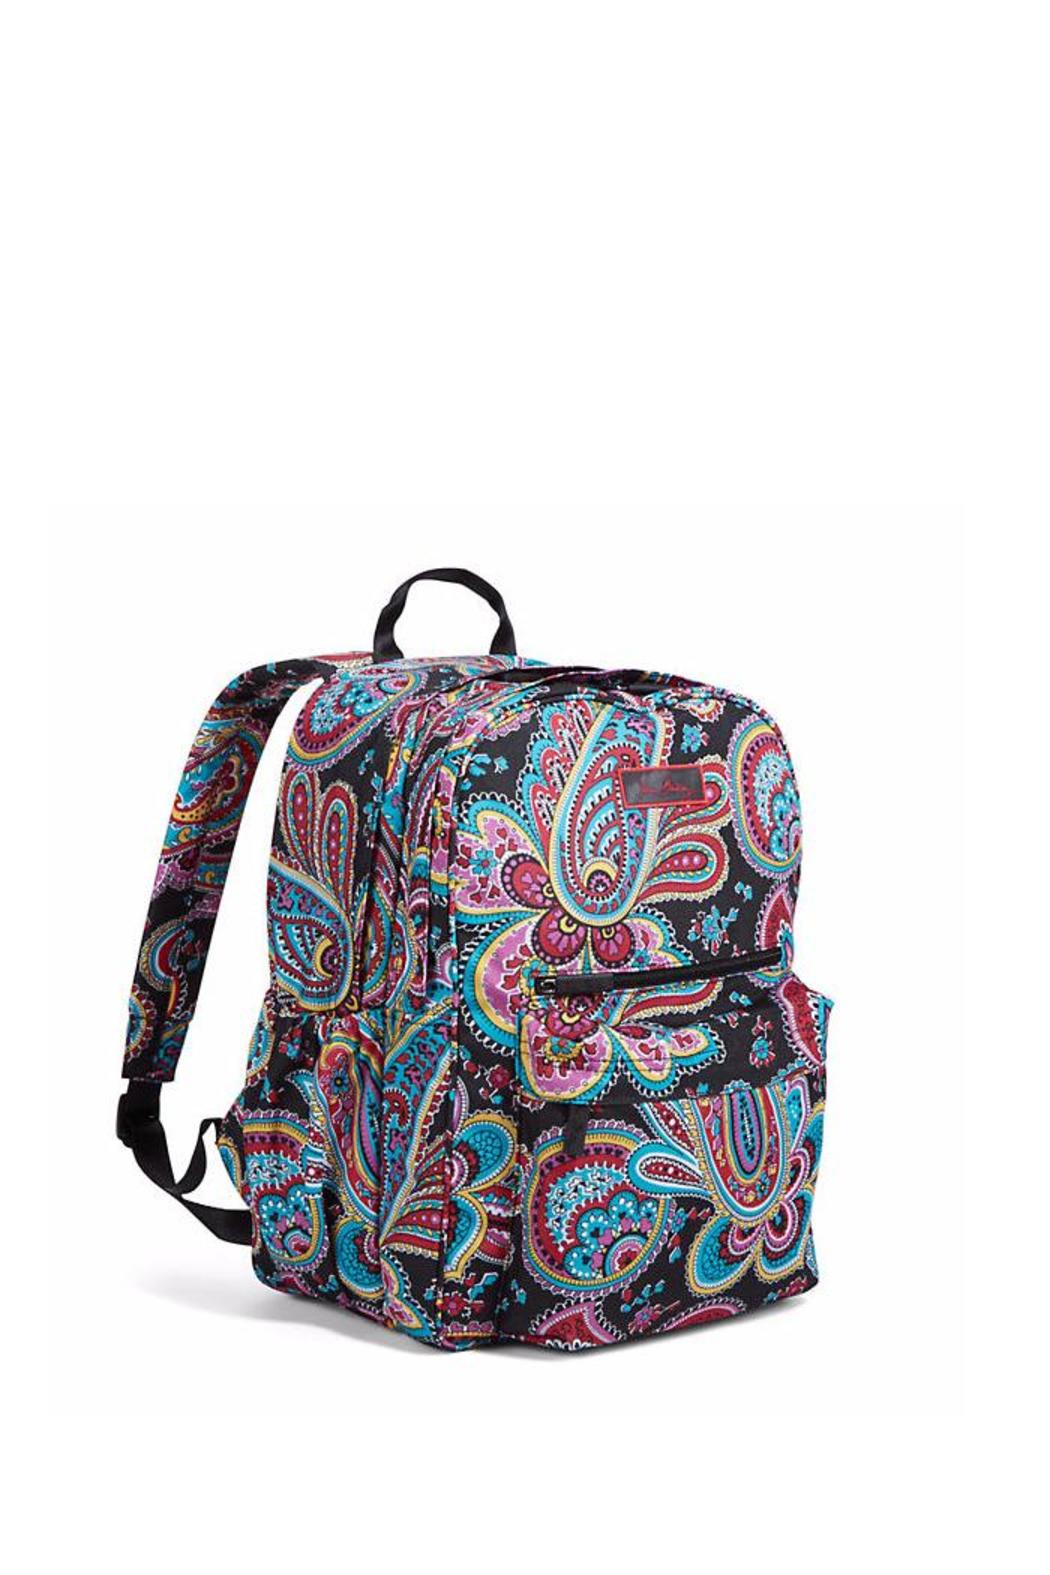 Vera Bradley Lighten Up Backpack From Omaha By Material